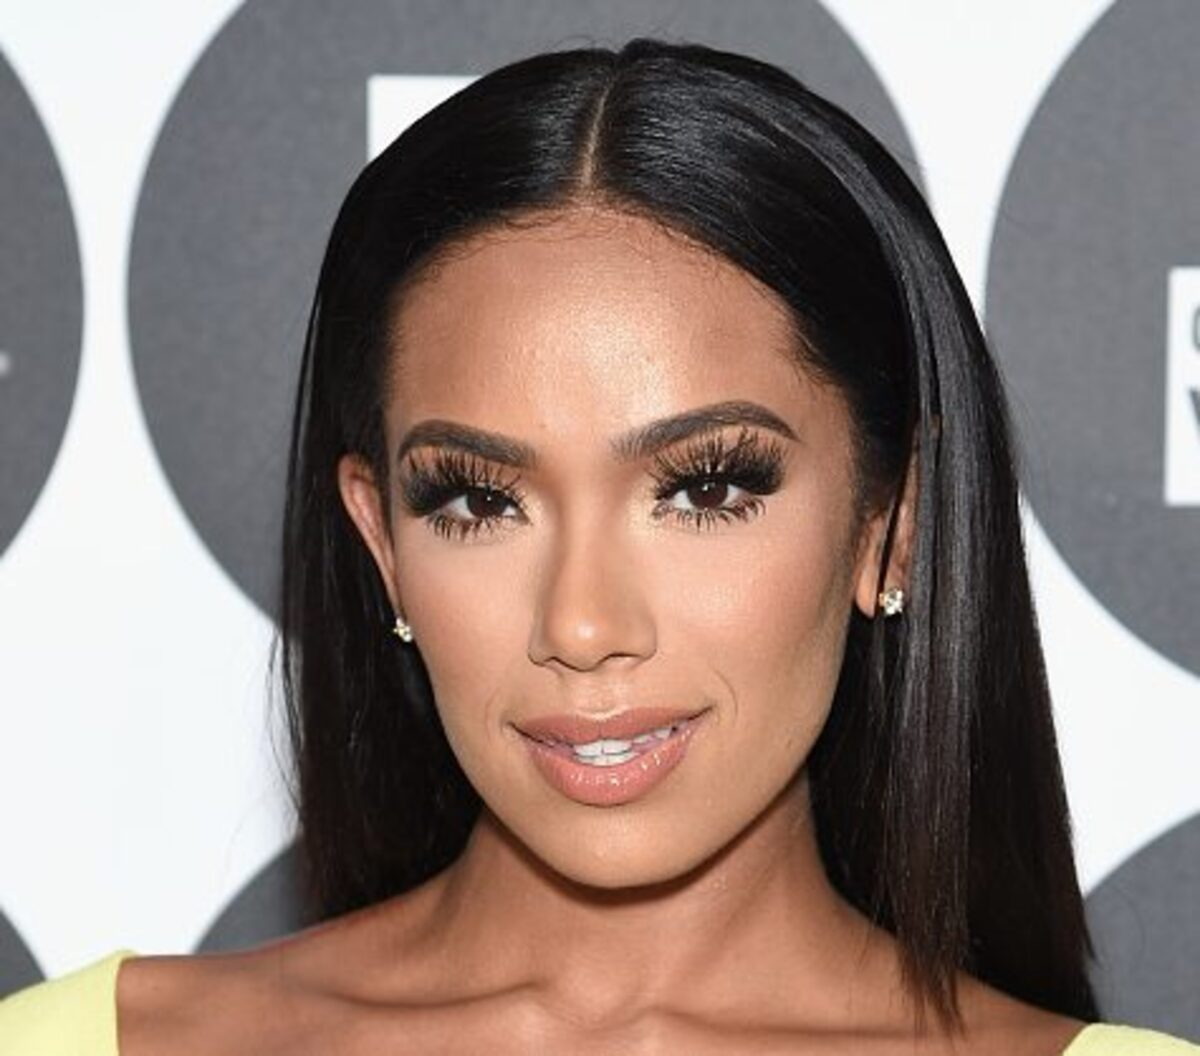 """erica-mena-breaks-the-internet-and-poses-topless-check-out-her-racy-photo-here"""